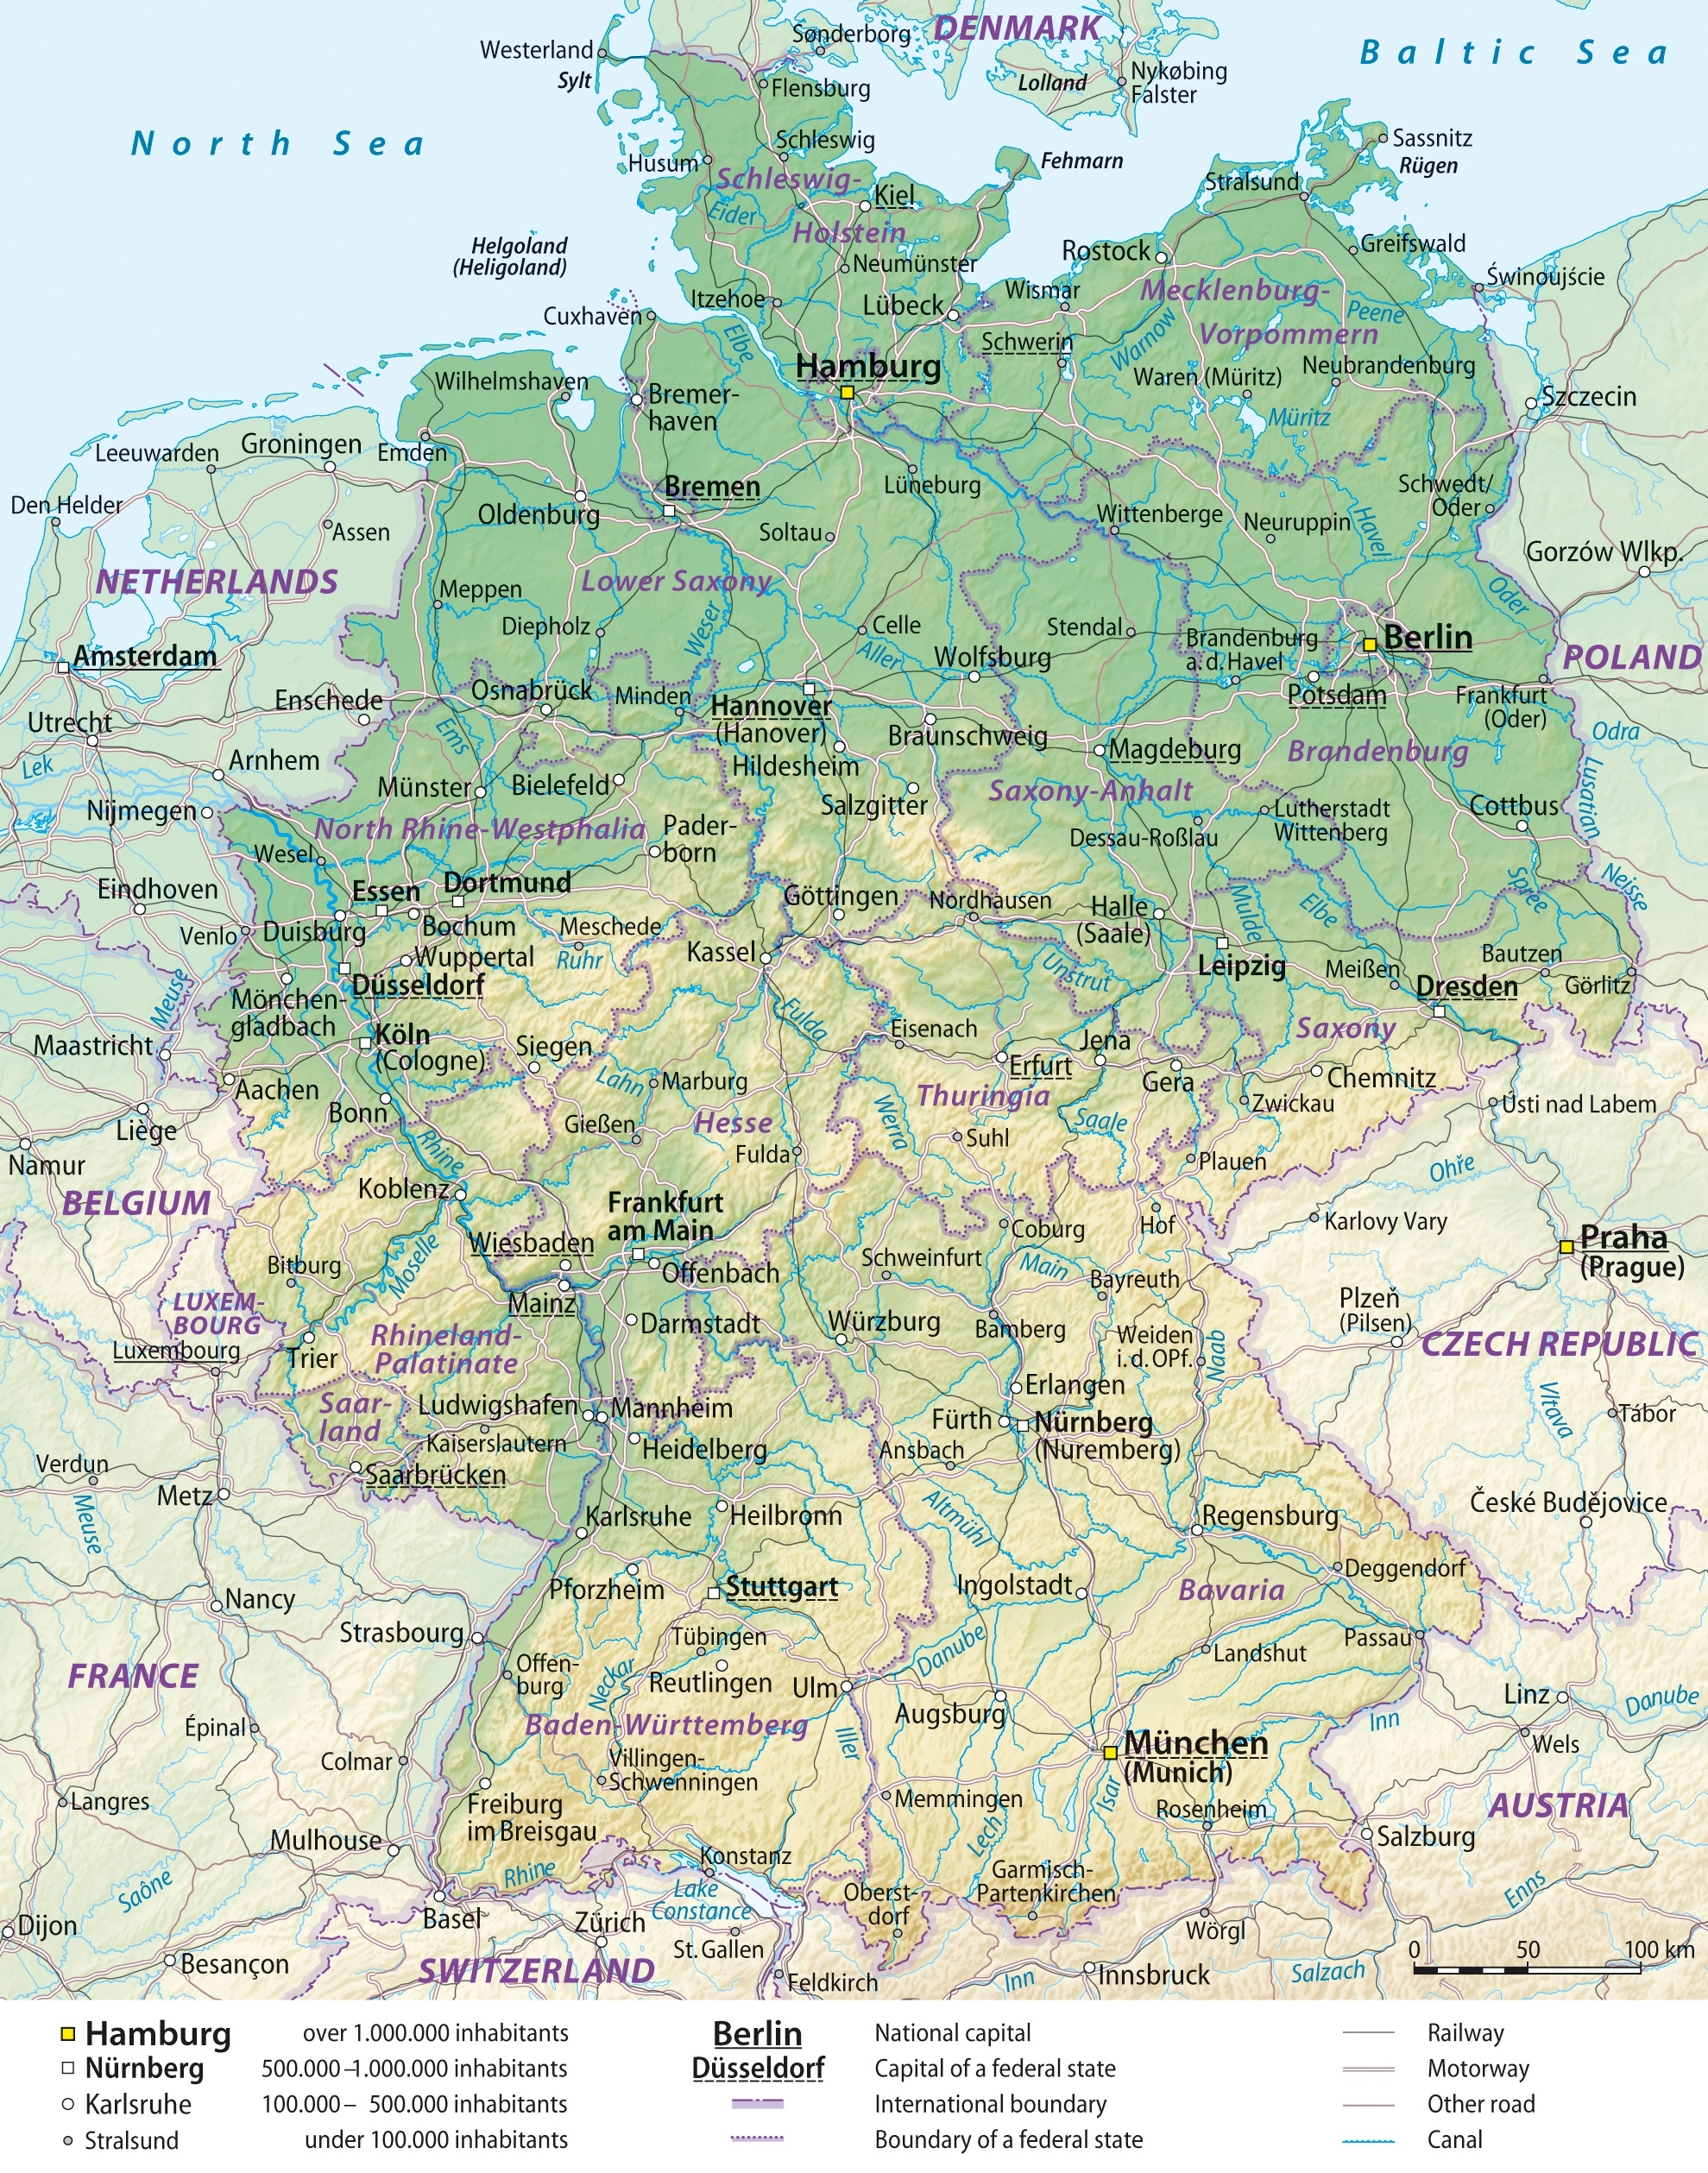 Map Of Switzerland And Germany With Cities And Travel Information regarding Road Map Germany Austria Switzerland